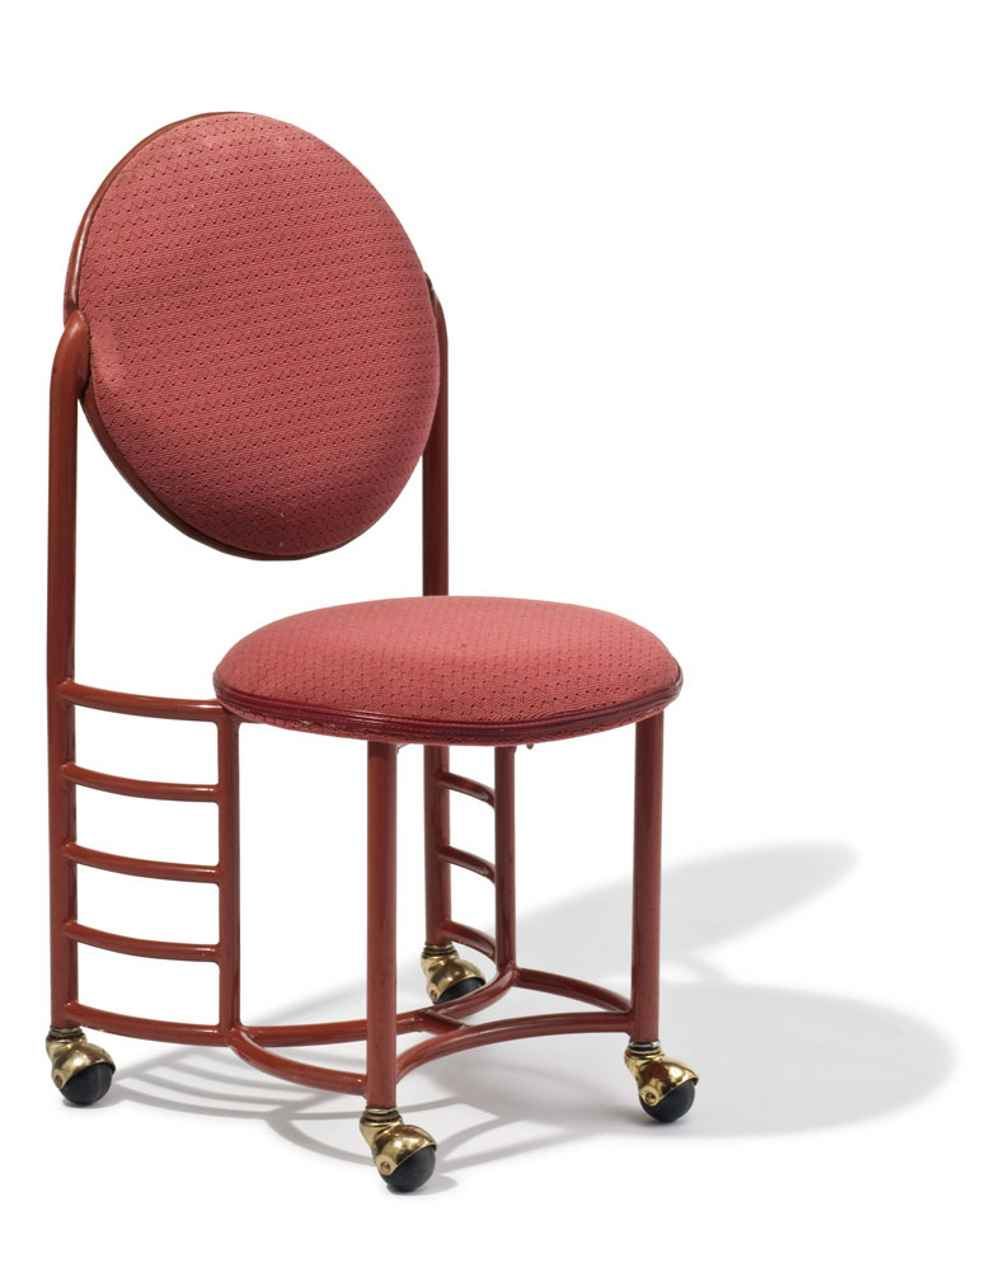 johnson wax unique red cherokee office chair